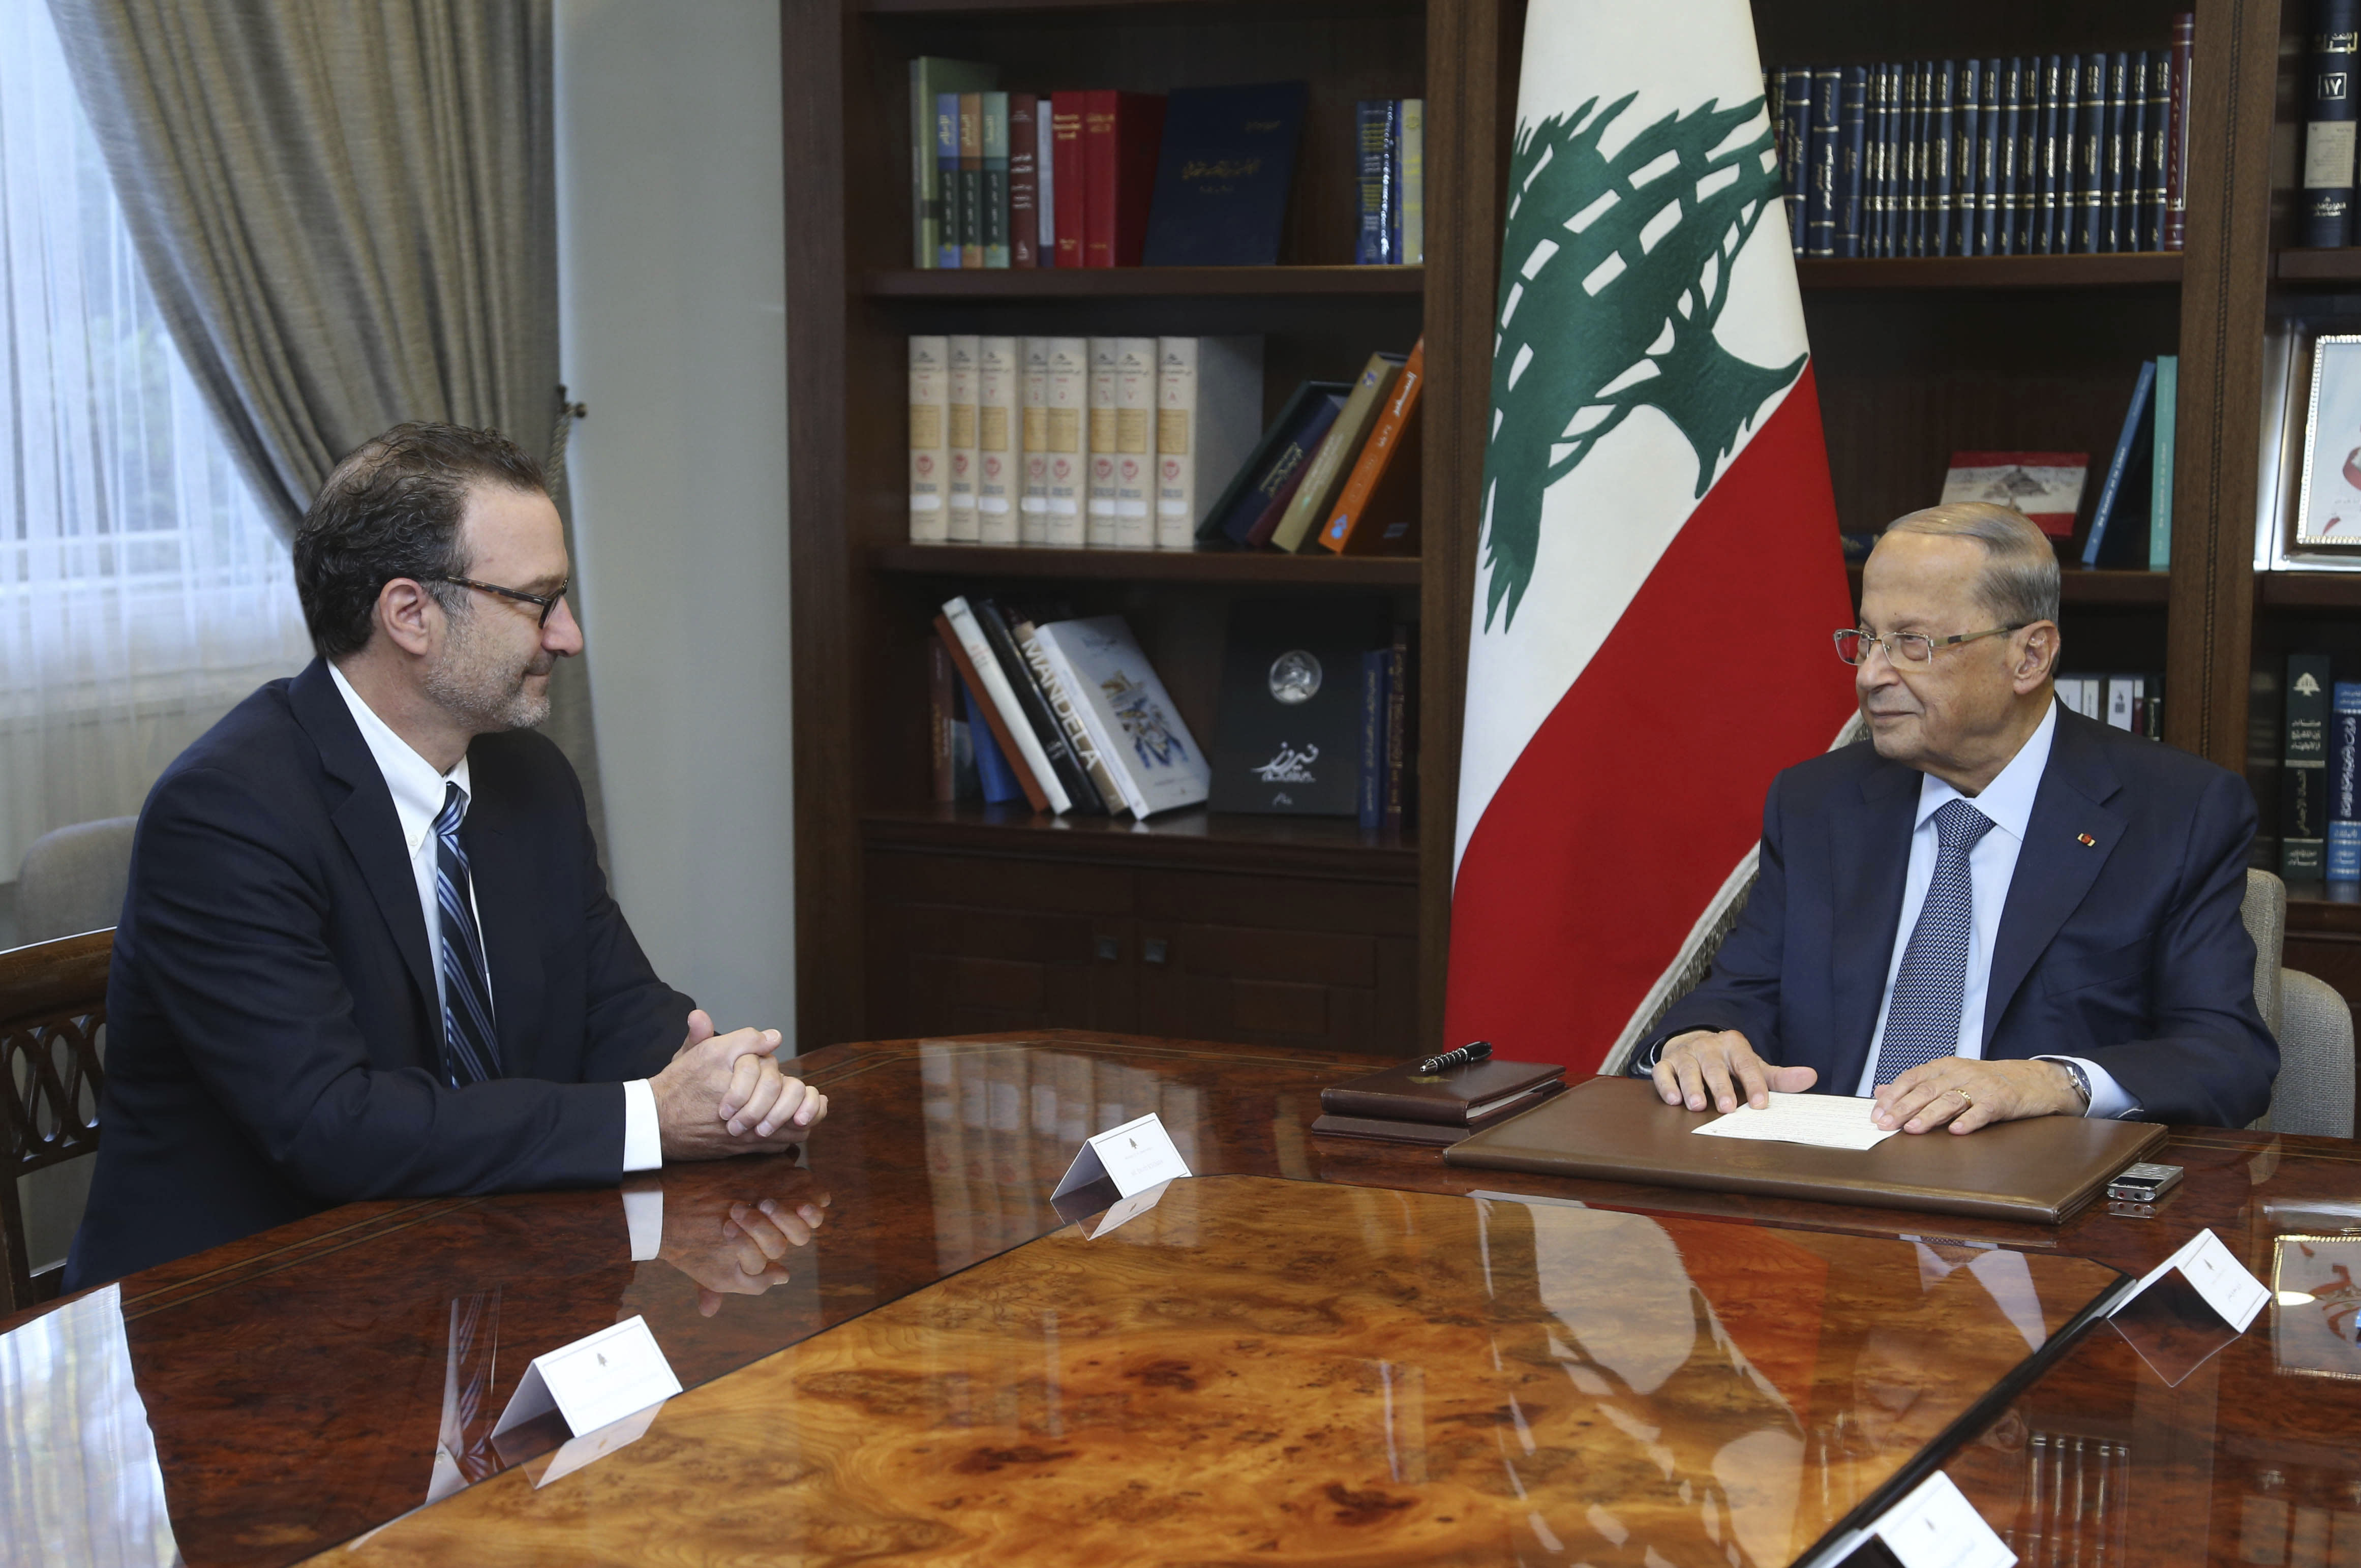 "In this photo released by Lebanon's official government photographer Dalati Nohra, Lebanese President Michel Aoun, right, meets with David Schenker, Assistant Secretary of State for Near Eastern Affairs, at the presidential palace, in Baabda east of Beirut, Lebanon, Tuesday, Sept. 10, 2019. The leader of Lebanon's militant Hezbollah group, Hassan Nasrallah, said Schenker visiting Beirut to mediate between Lebanon and Israel over a maritime border dispute is a ""friend of Israel."" Nasrallah urged Lebanese officials to negotiate from a point of strength. (Dalati Nohra via AP)"